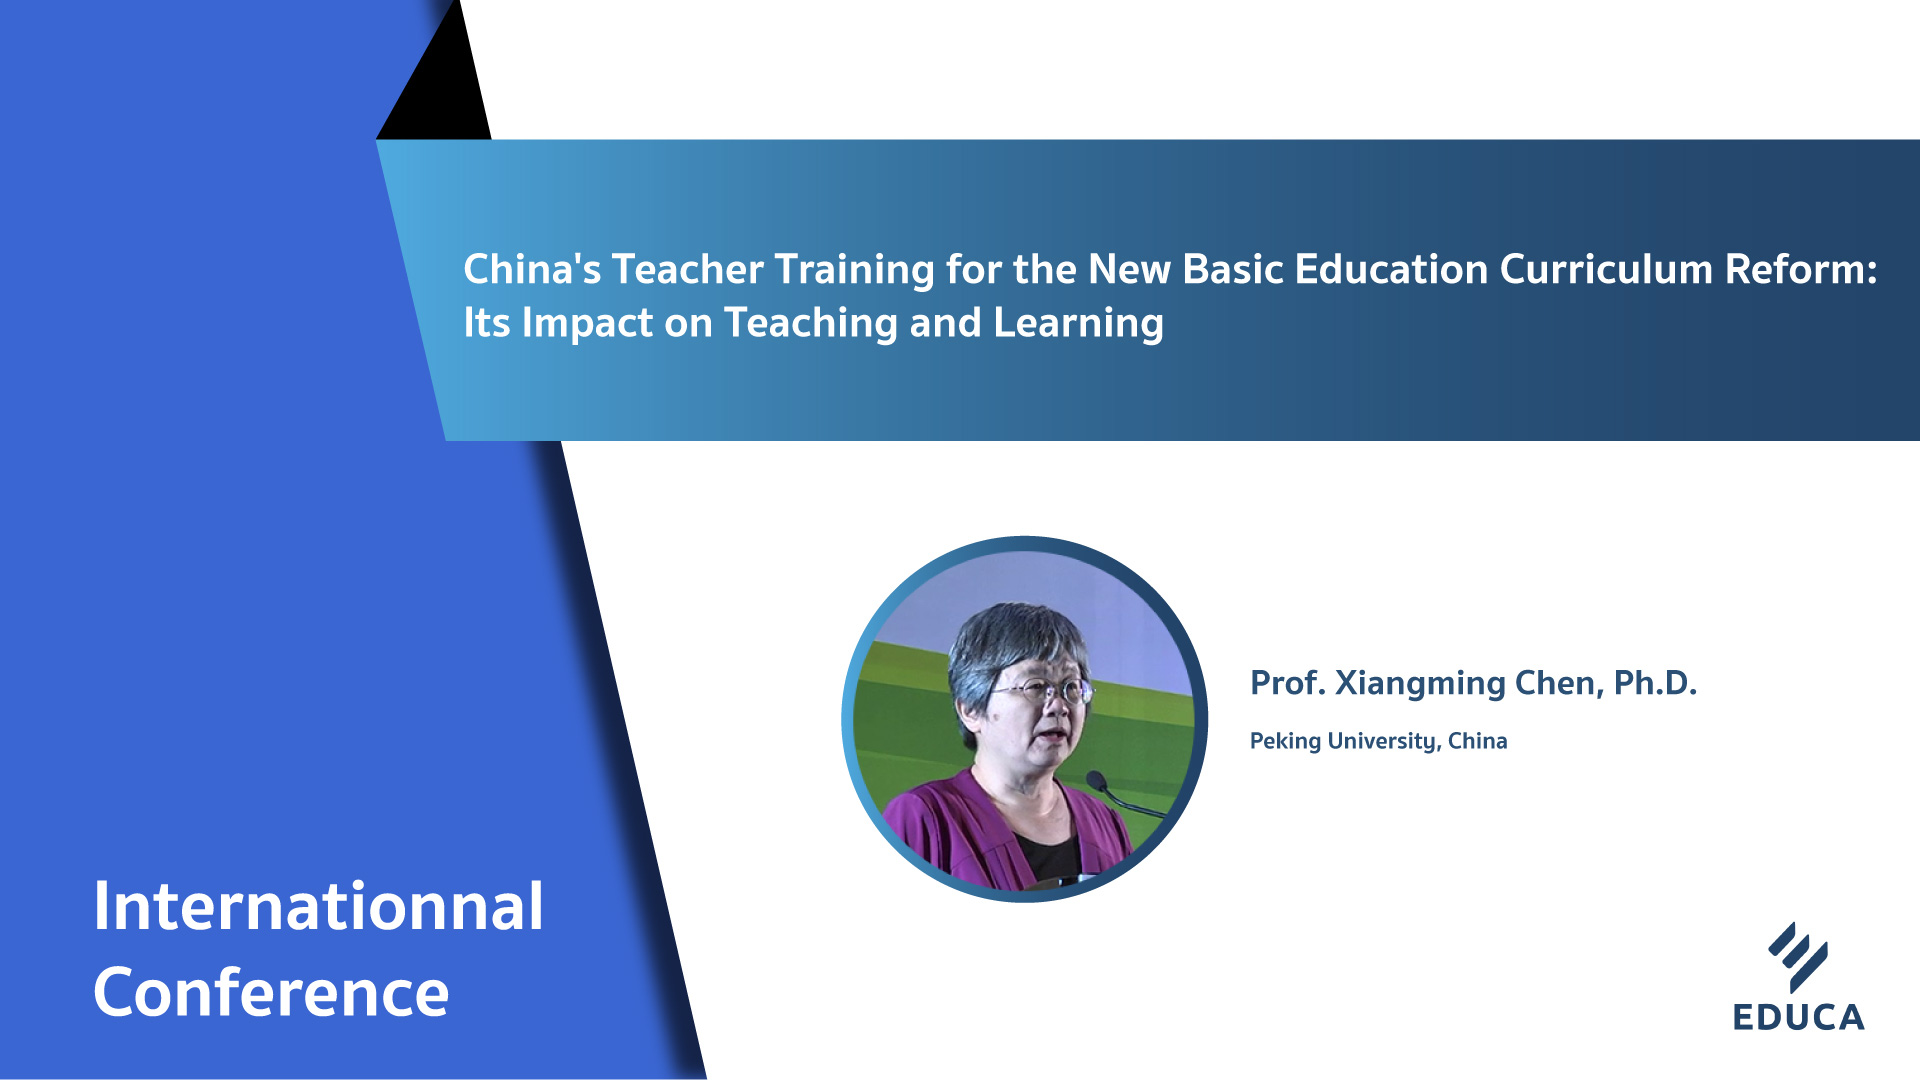 China's Teacher Training for the New Basic Education Curriculum Reform: Its Impact on Teaching and Learning